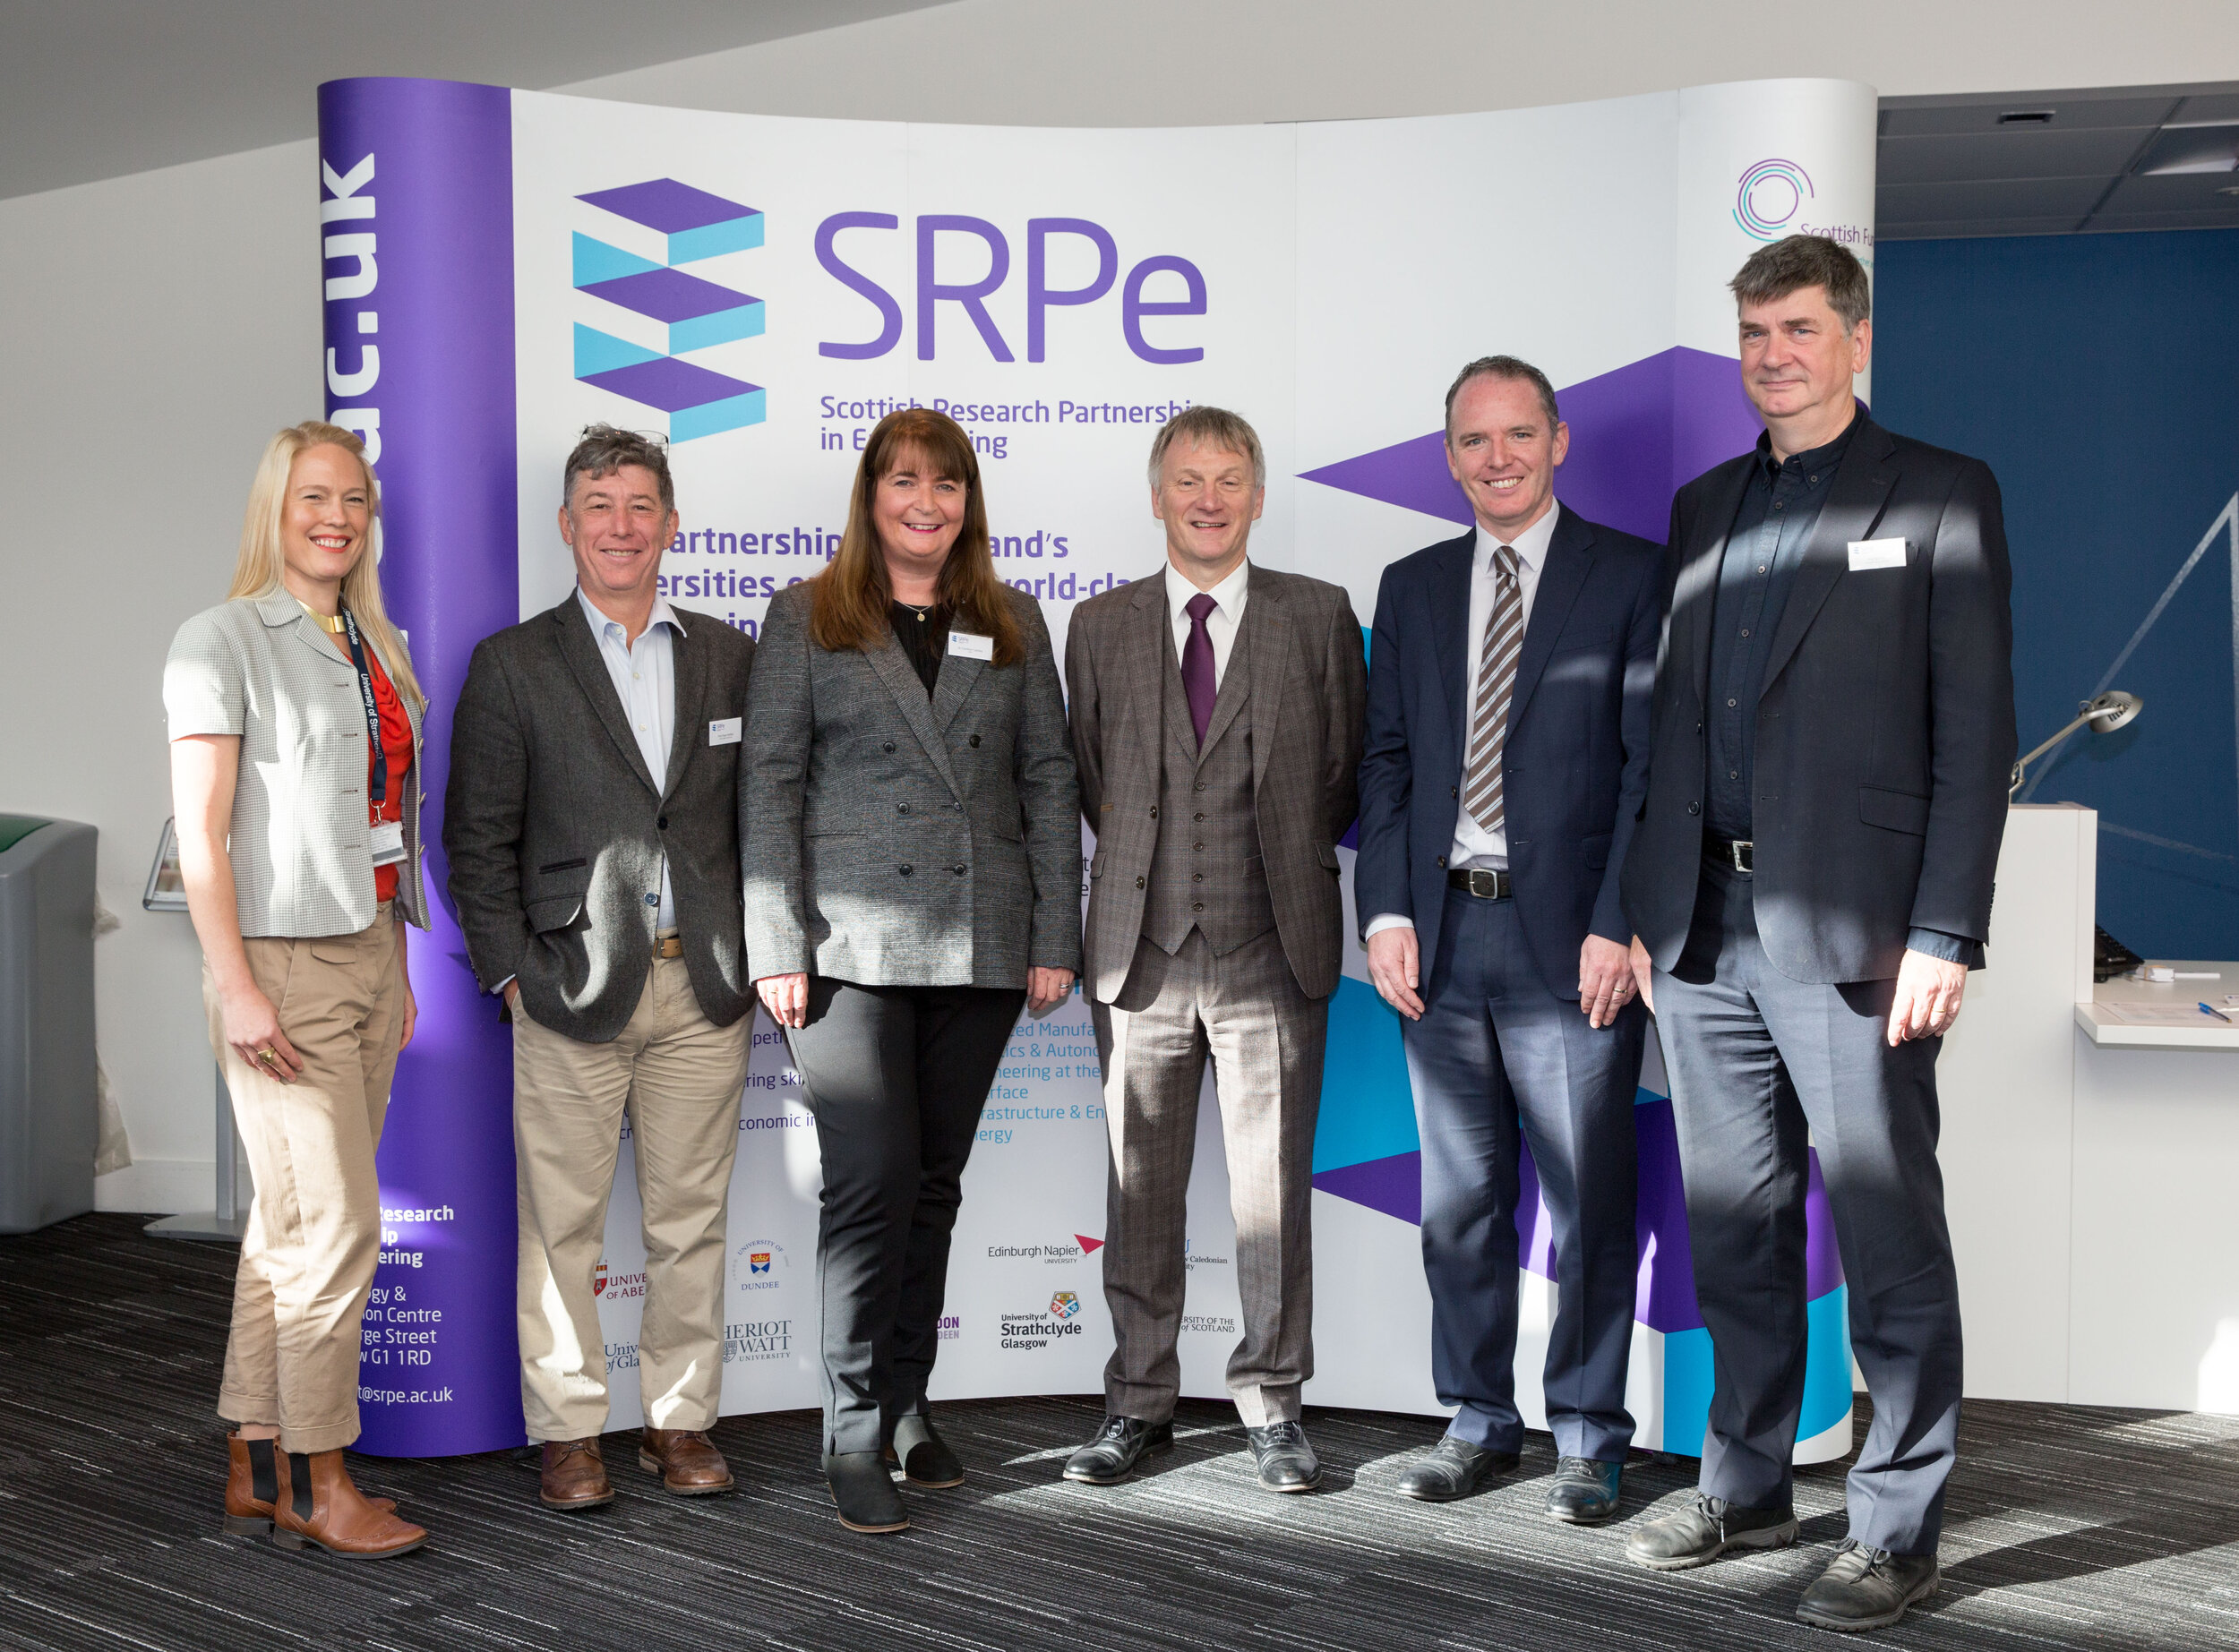 From left to right: Claire Ordoyno (SRPe Coordinator), Professor Yvan Petillot (SRPe / Heriot Watt University), Dr Caroline Cantley (SRPe Executive Director), Ivan McKee MSP (Minister for Trade, Investment and Innovation), Adrian Gillespie (CCO, University of Strathclyde), Professor Bill Ion (SRPe / University of Strathclyde).